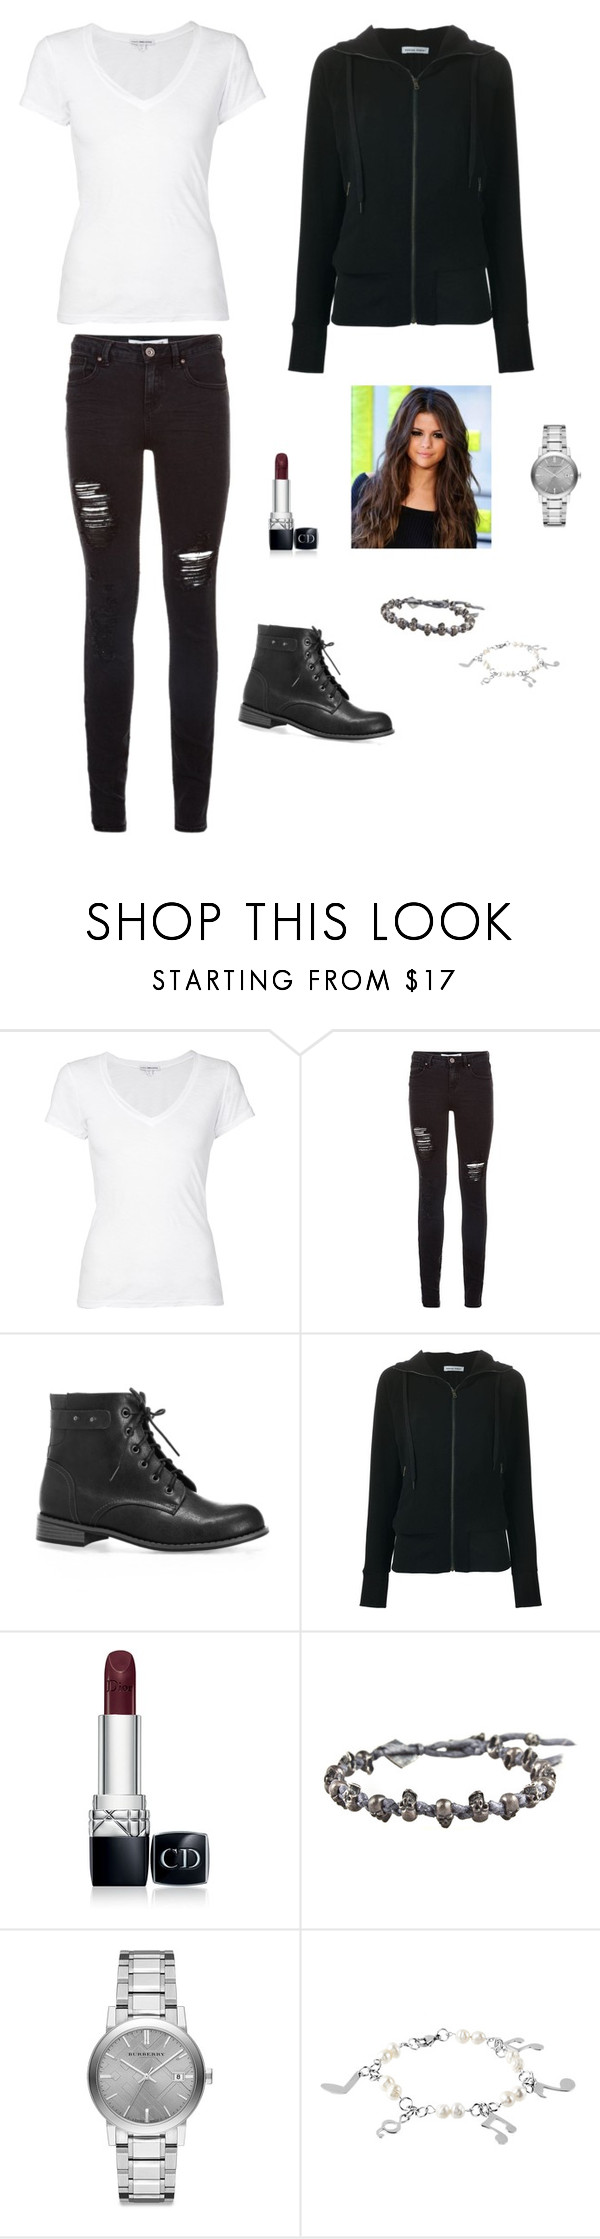 """Untitled #744"" by francyrizzo ❤ liked on Polyvore featuring James Perse, Avenue, Tomas Maier, Christian Dior, M. Cohen, Burberry, West Coast Jewelry, women's clothing, women's fashion and women"